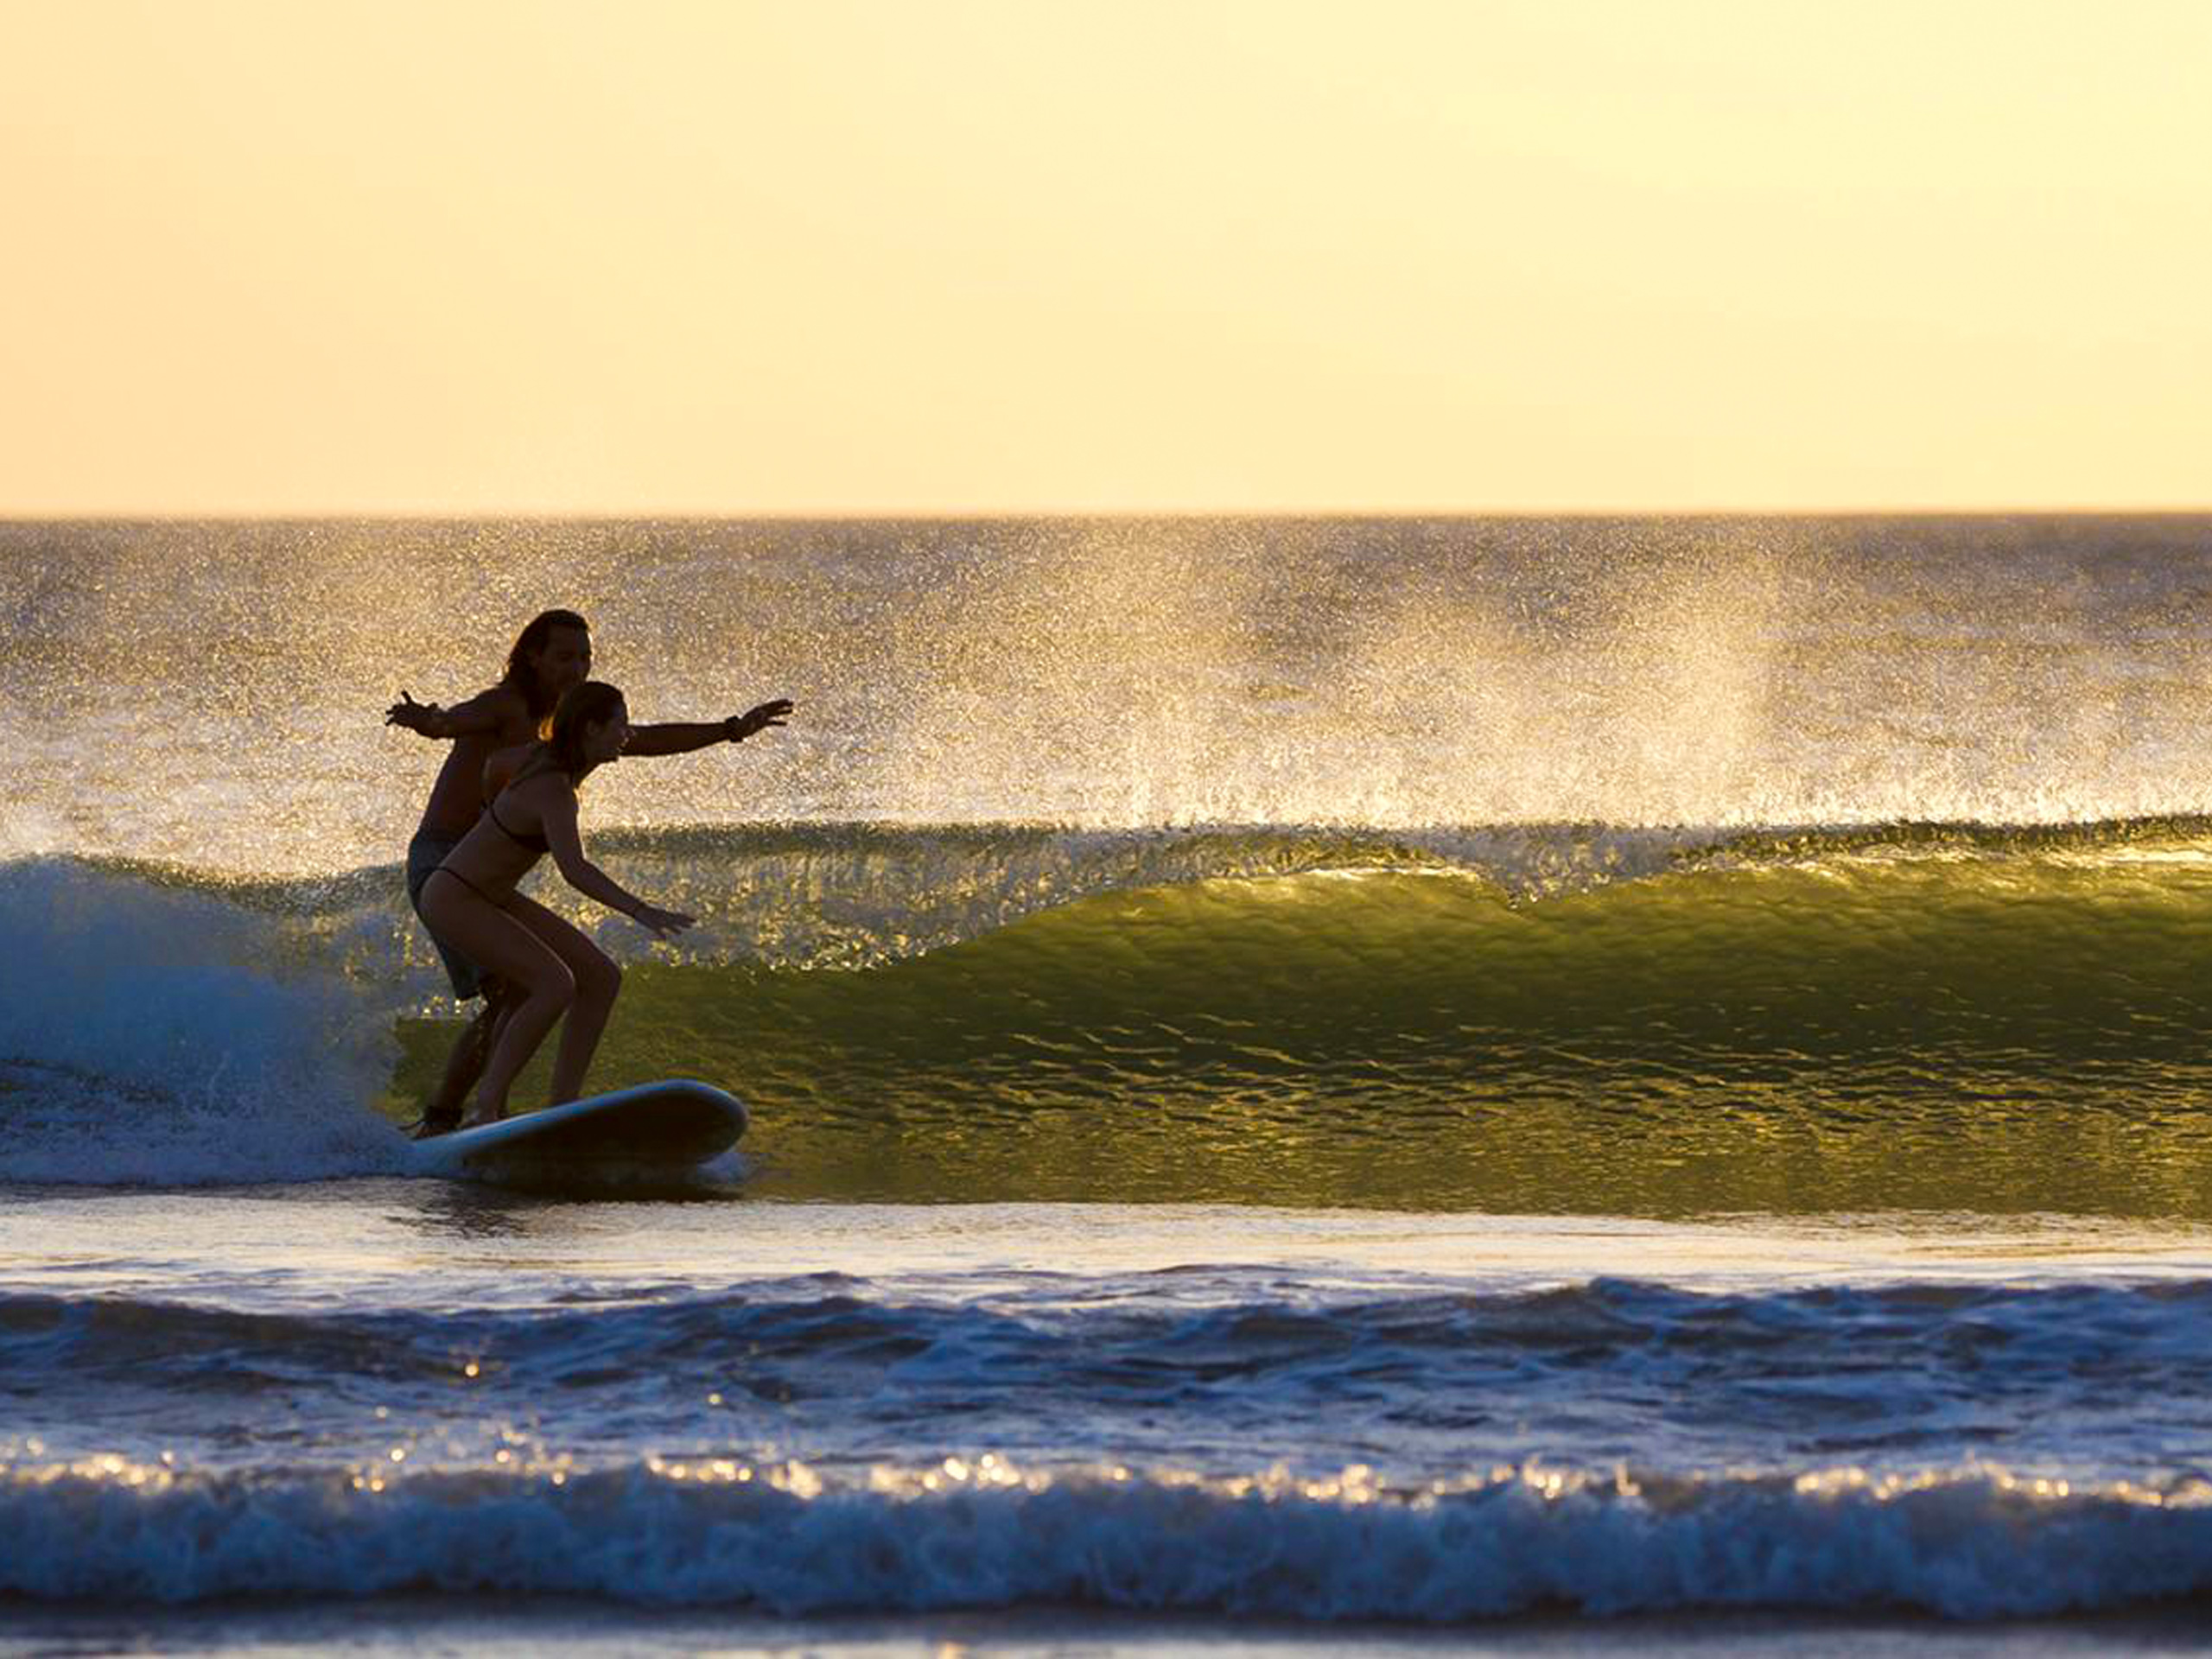 Surfing on the Pacific Ocean